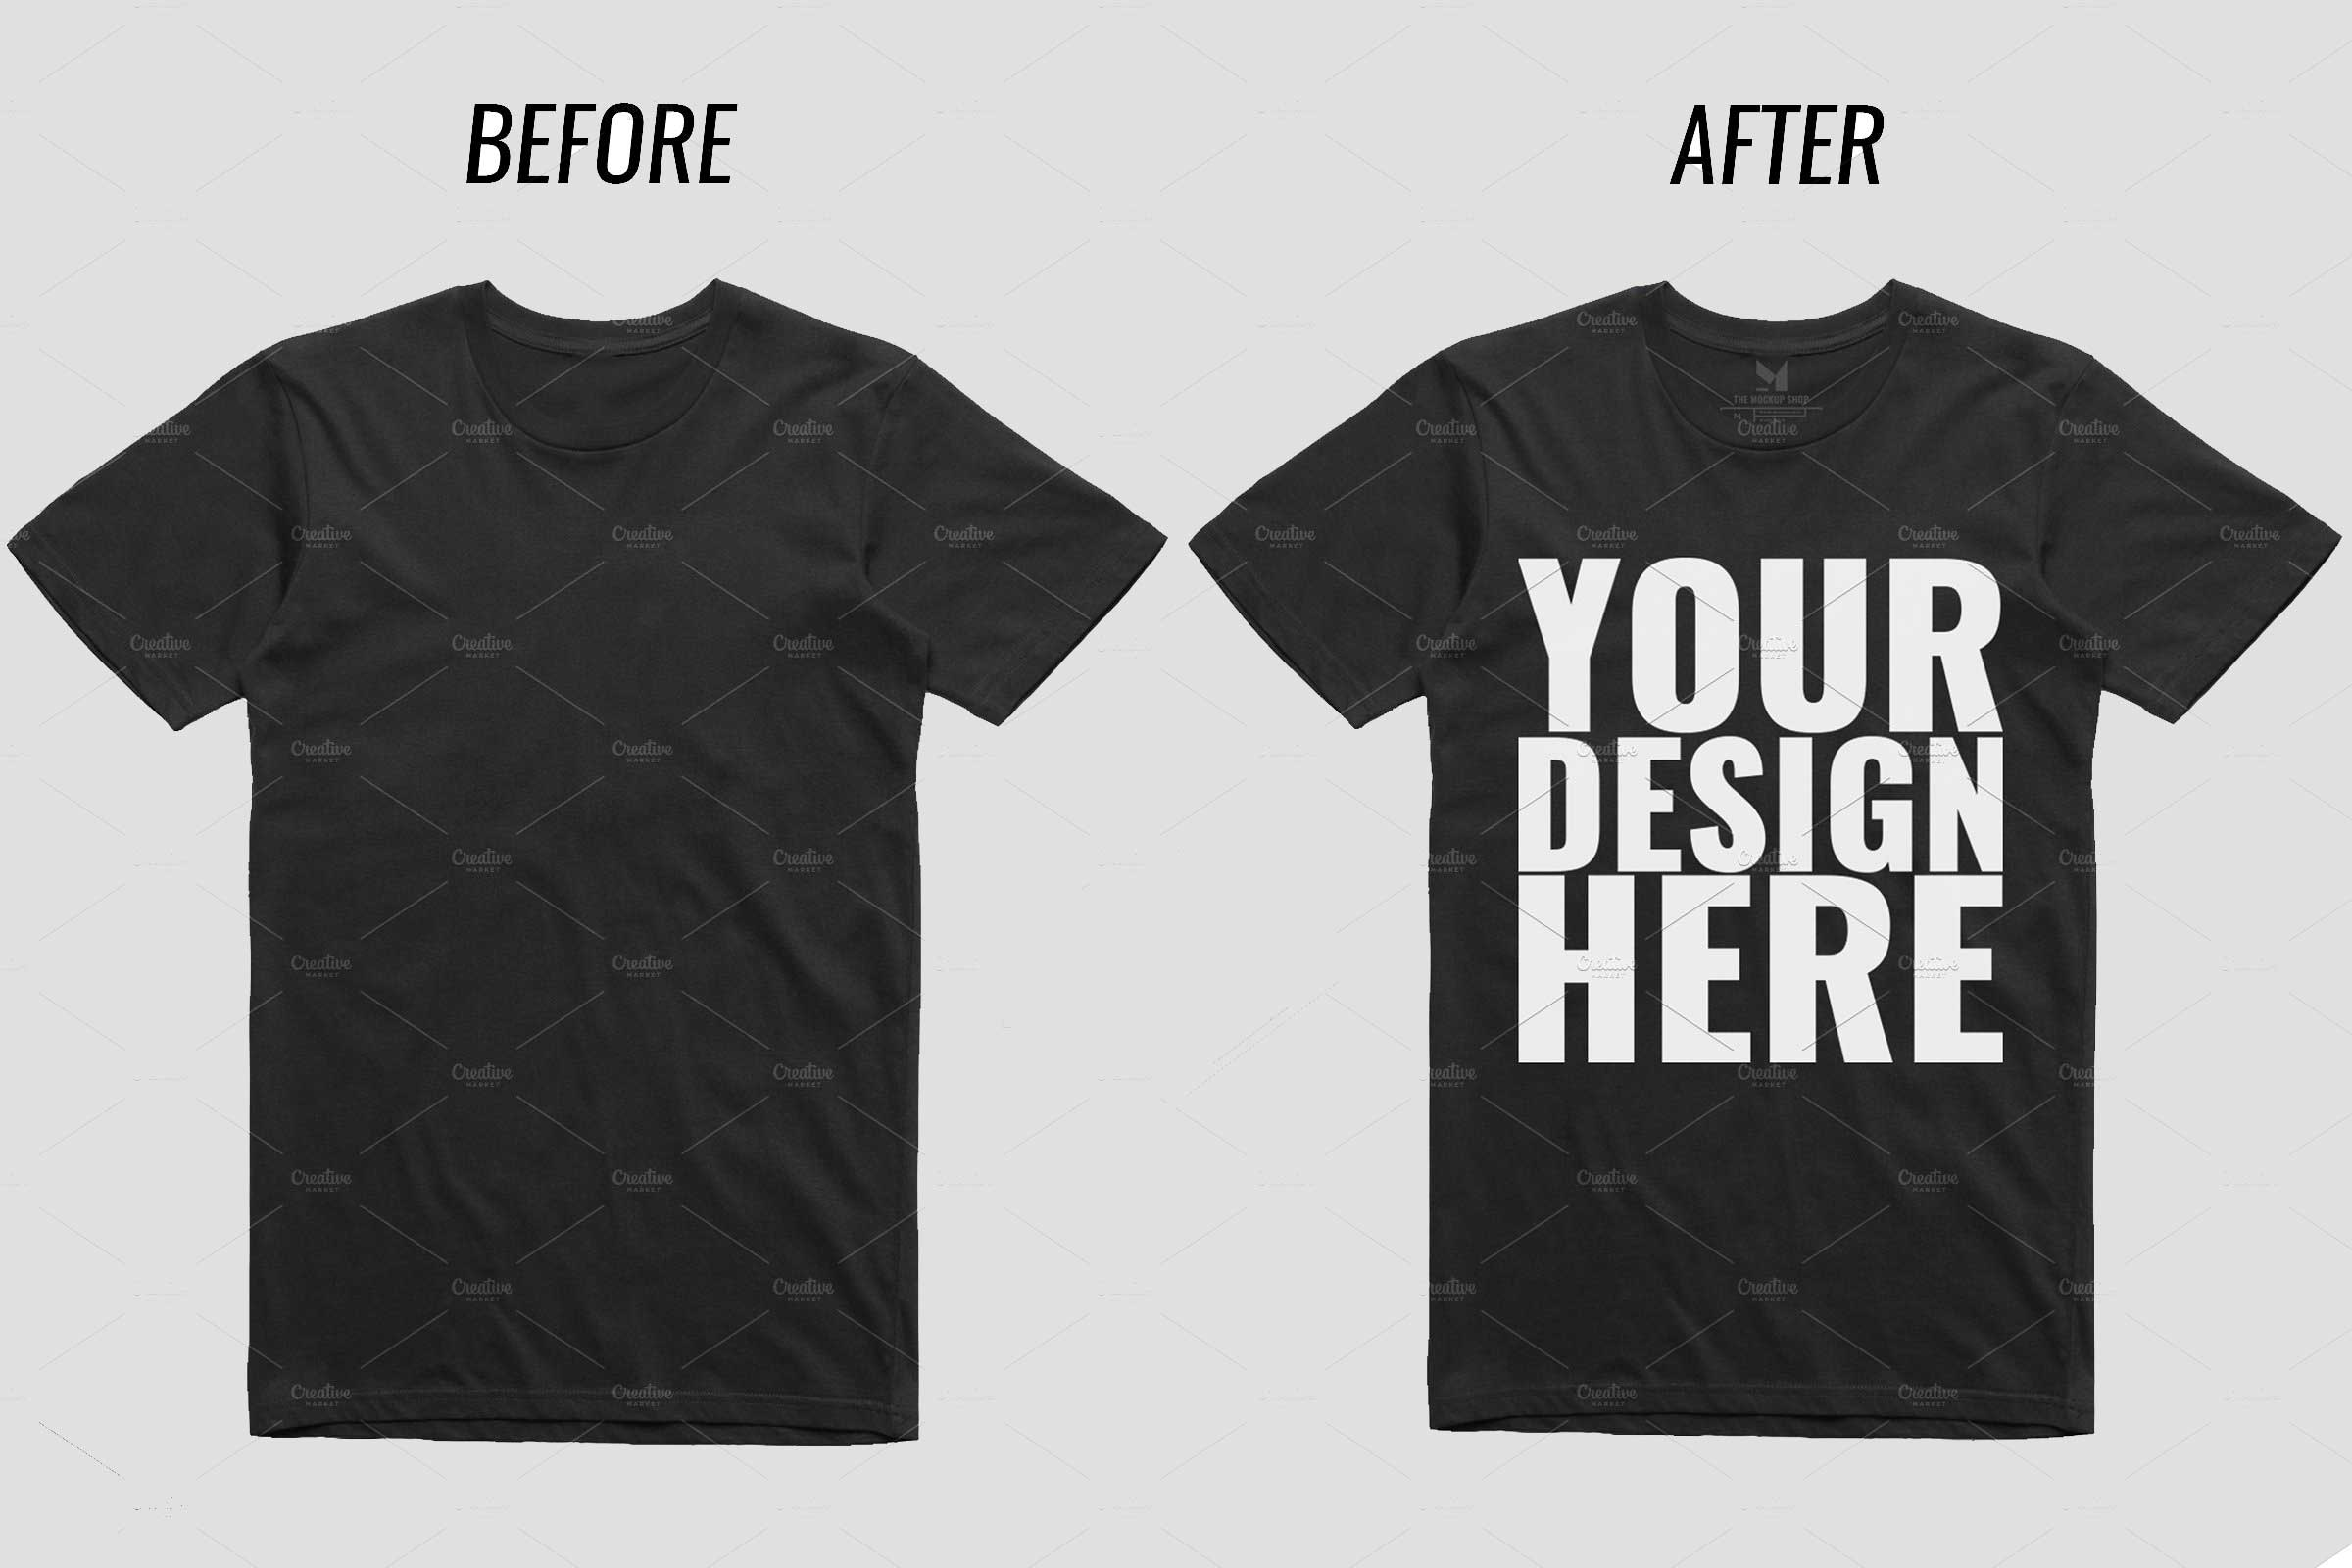 5185a684e44df0 30 Awesome Black T-shirt Mockups For Your Apparel Business - Colorlib